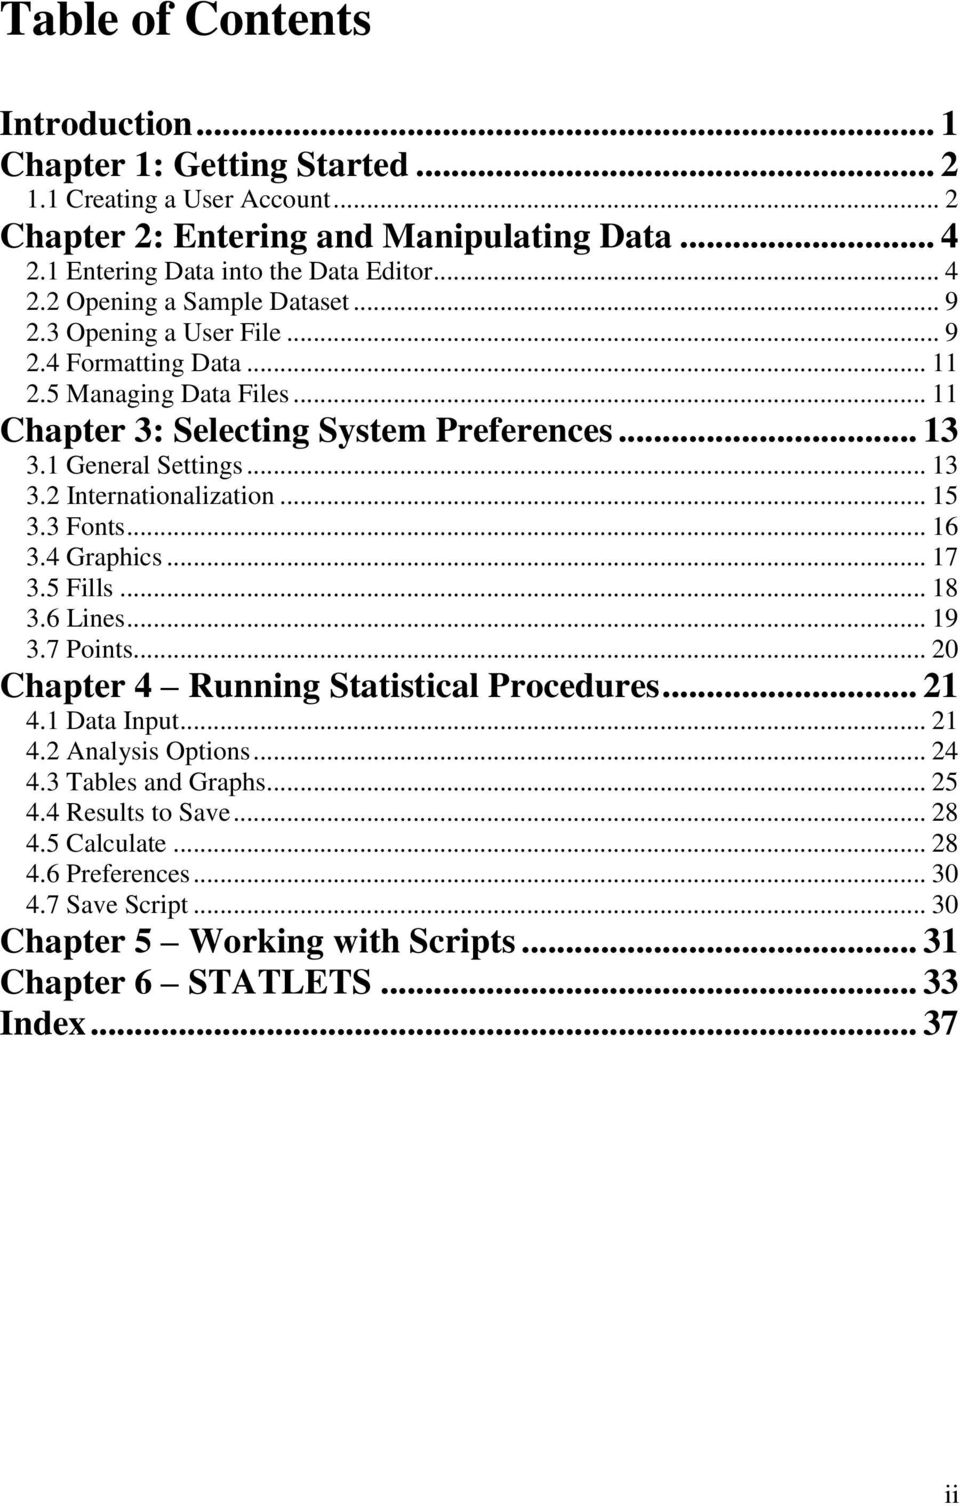 3 Fonts... 16 3.4 Graphics... 17 3.5 Fills... 18 3.6 Lines... 19 3.7 Points... 20 Chapter 4 Running Statistical Procedures... 21 4.1 Data Input... 21 4.2 Analysis Options... 24 4.